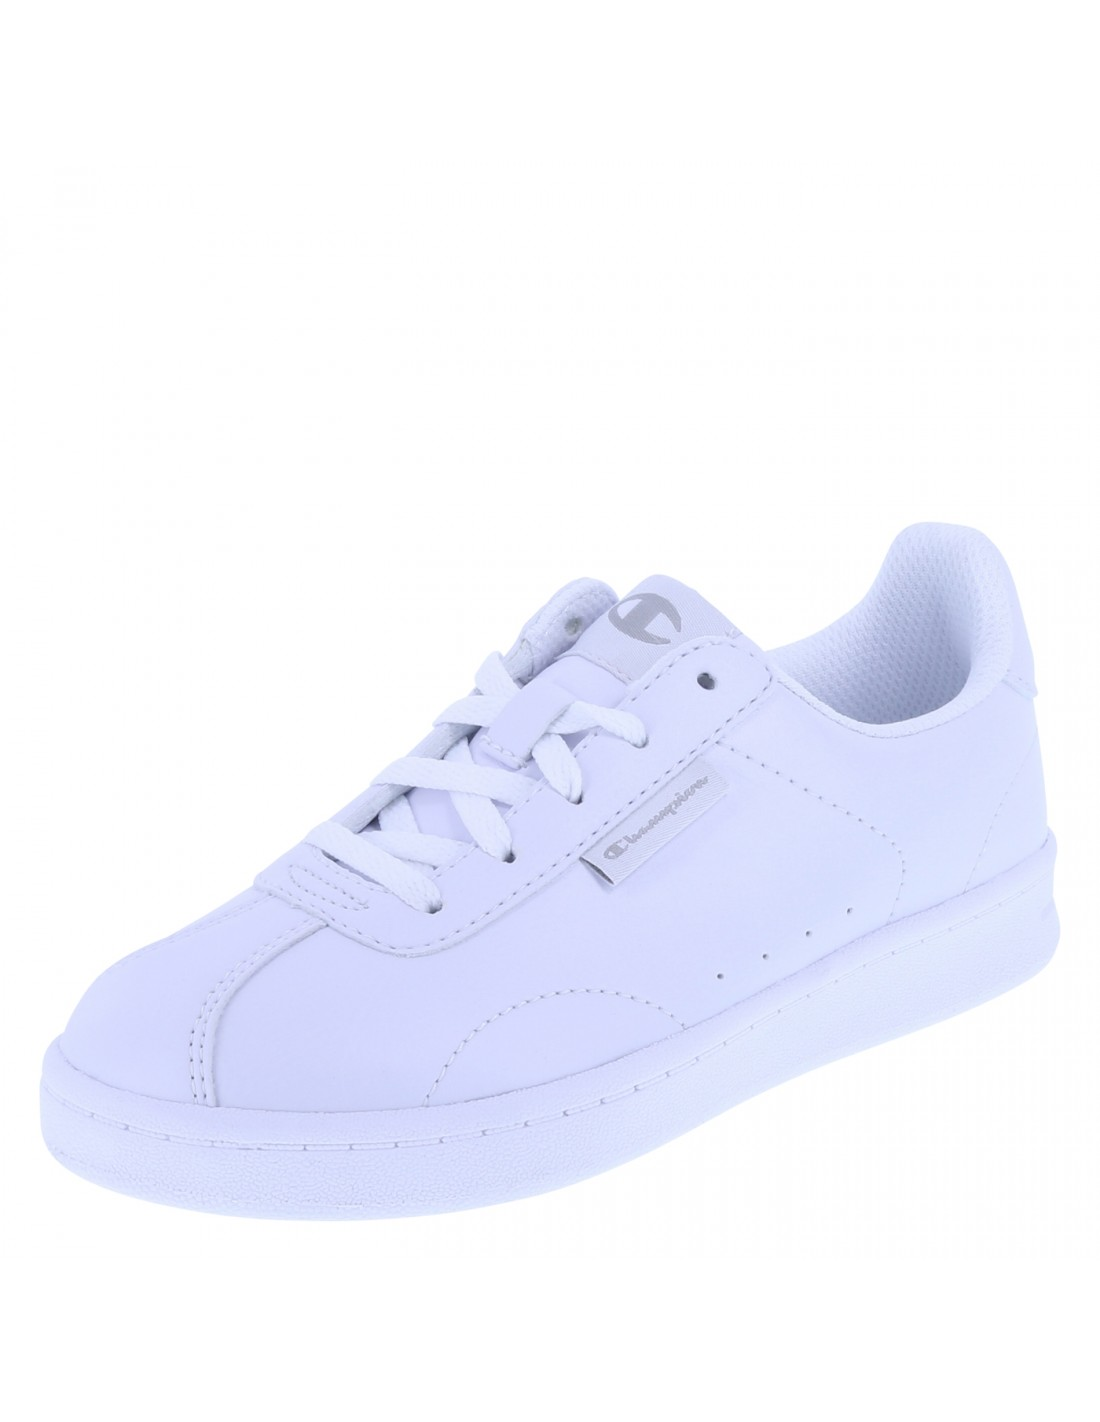 0cab7376fa3 Girls  Rally shoes - White. On sale! Previous